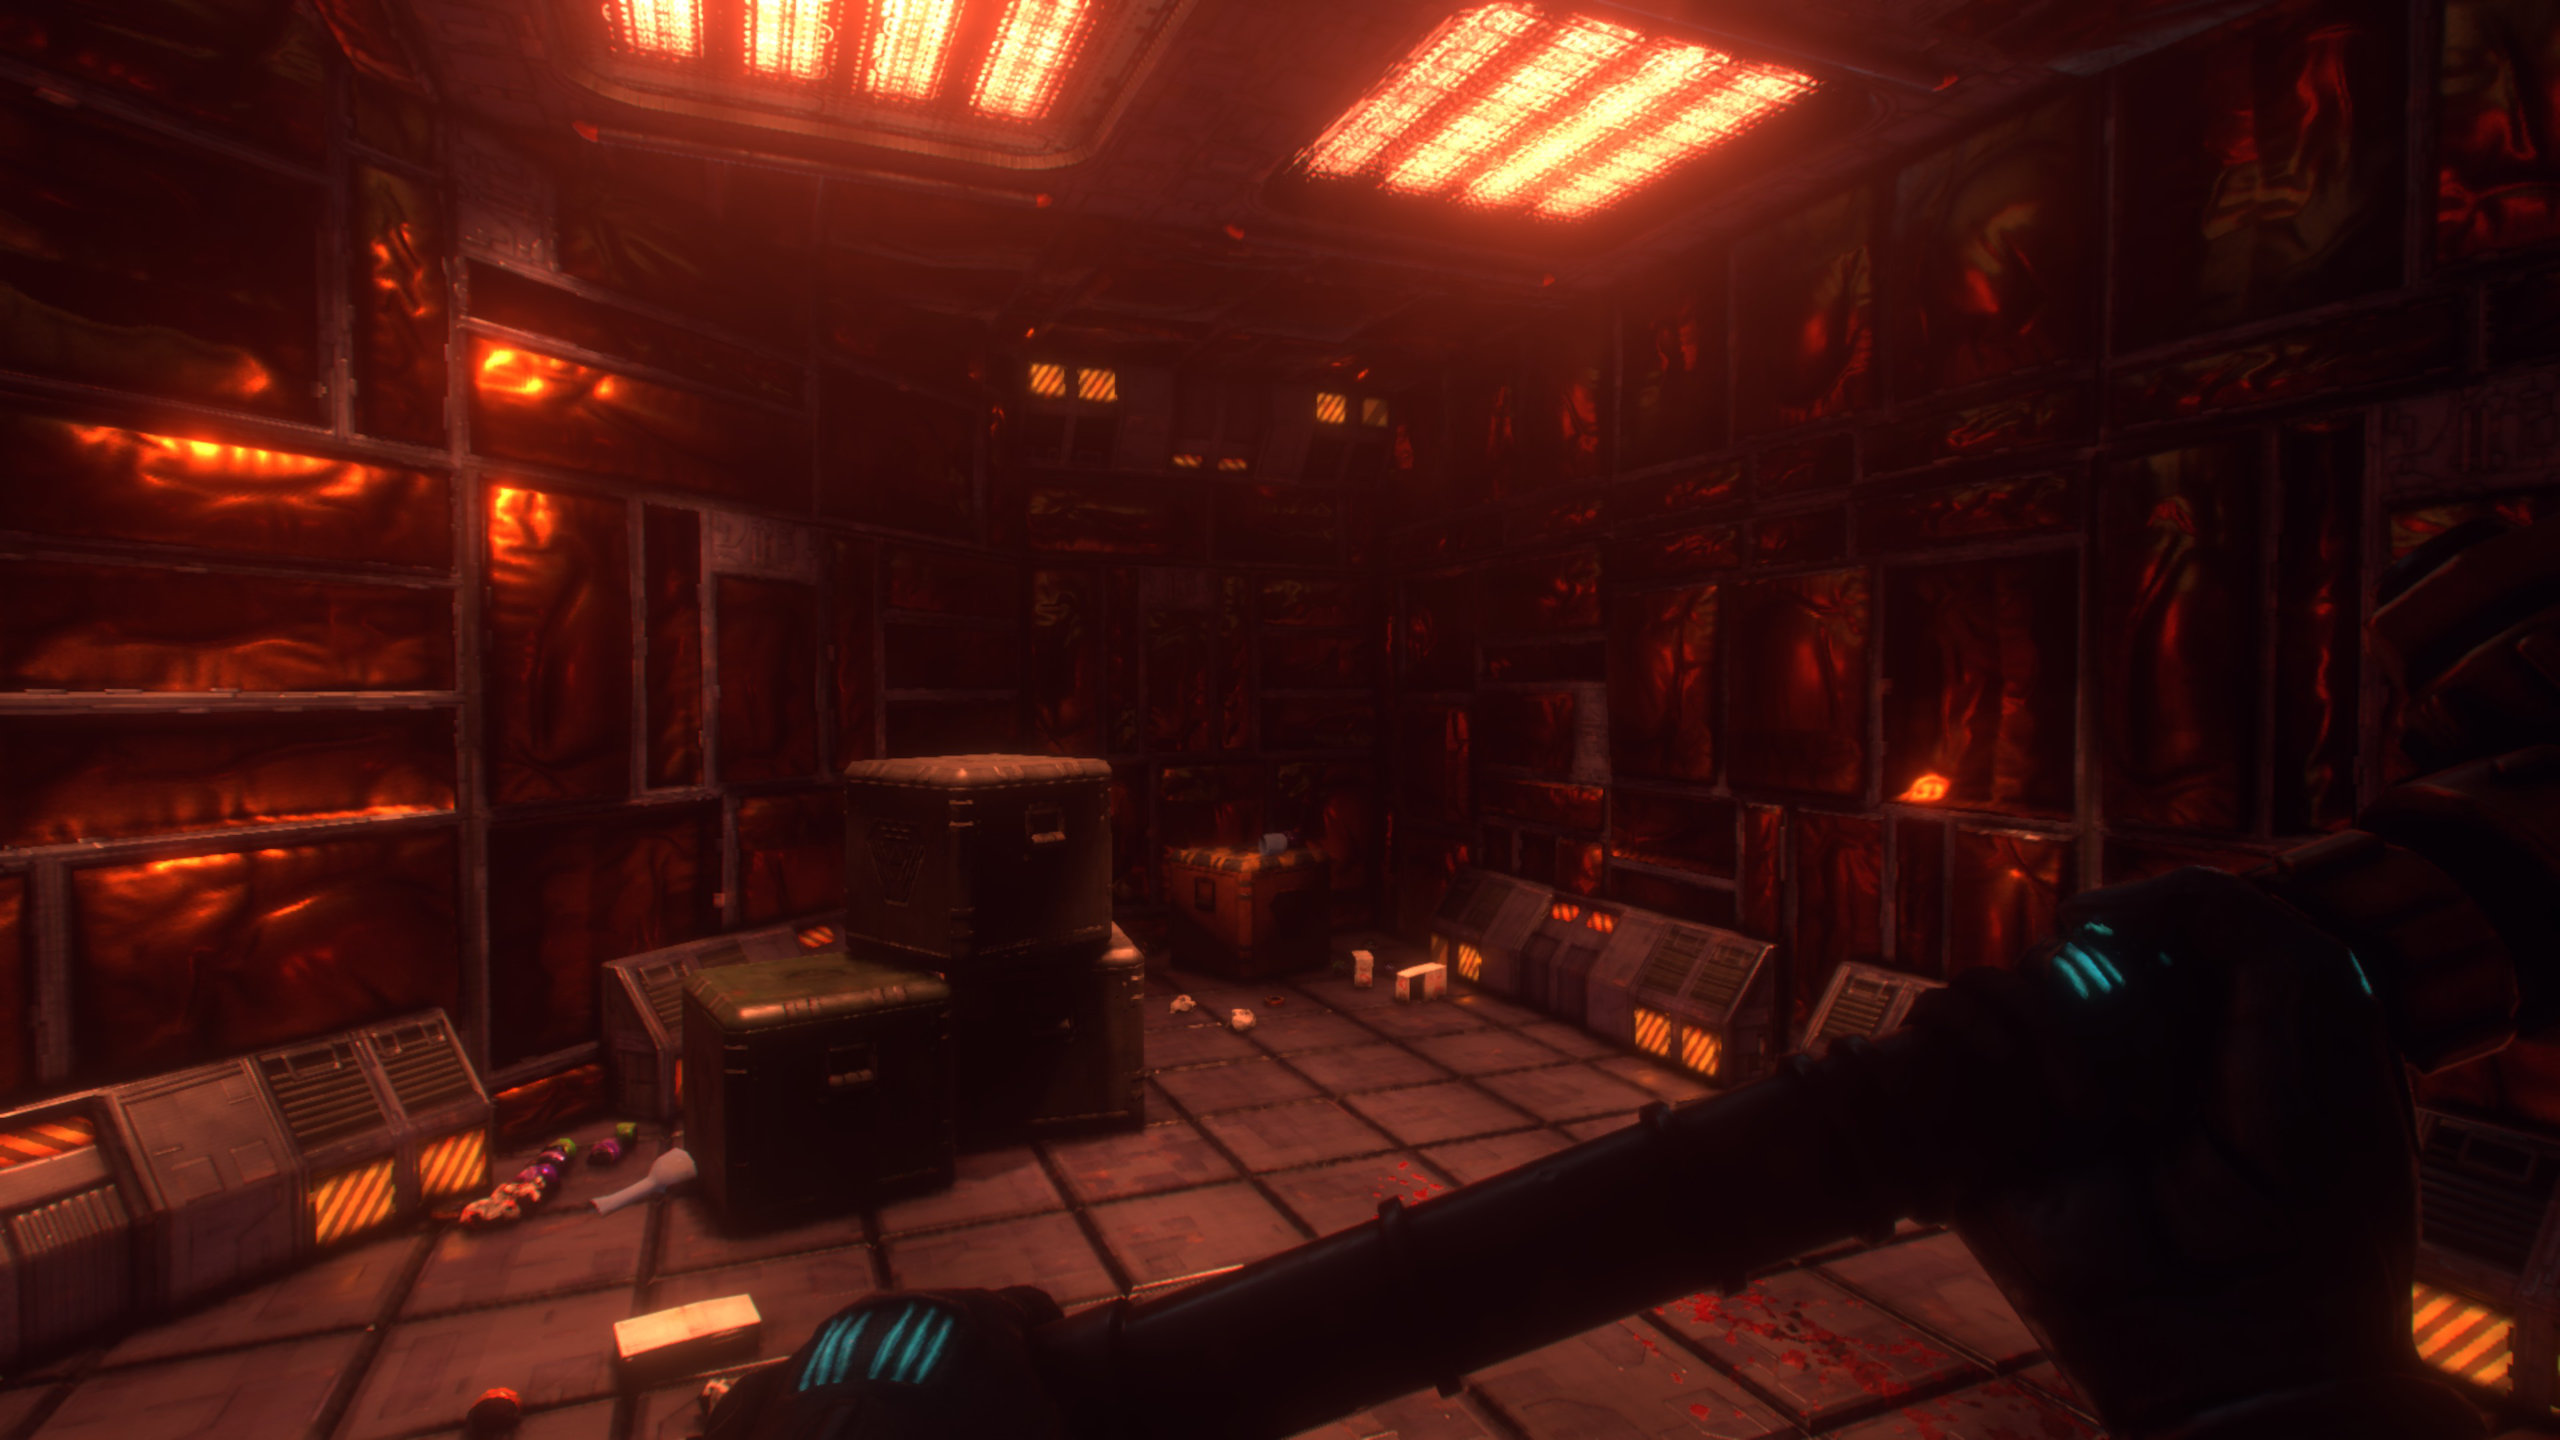 The protagonist of System Shock surveys a neon-lit dead end, holding their trusty wrench to help ward off enemies.